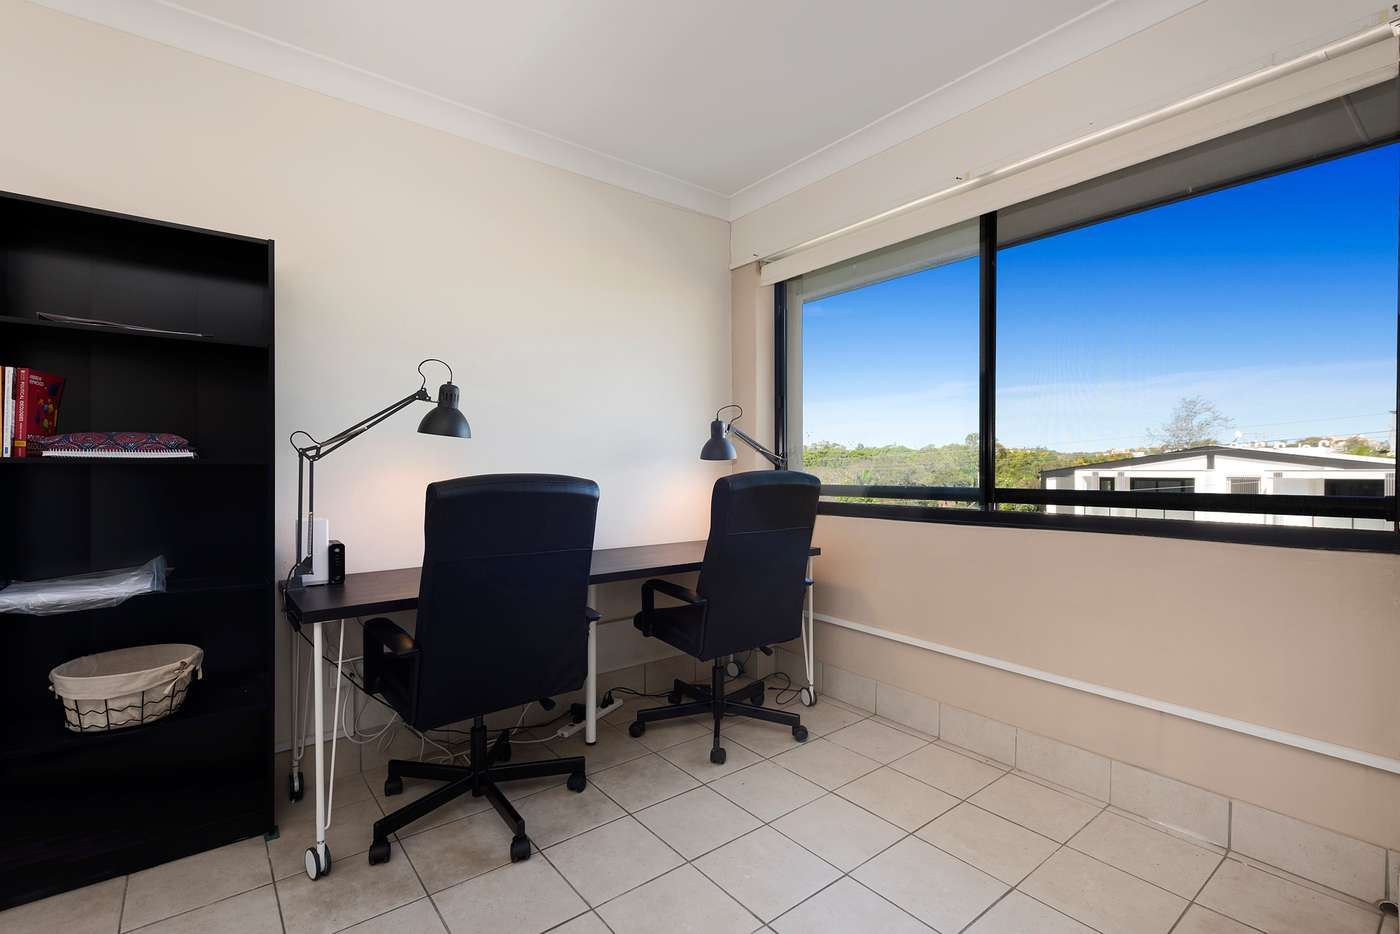 Sixth view of Homely apartment listing, 12/42-48 Durham Street, St Lucia QLD 4067